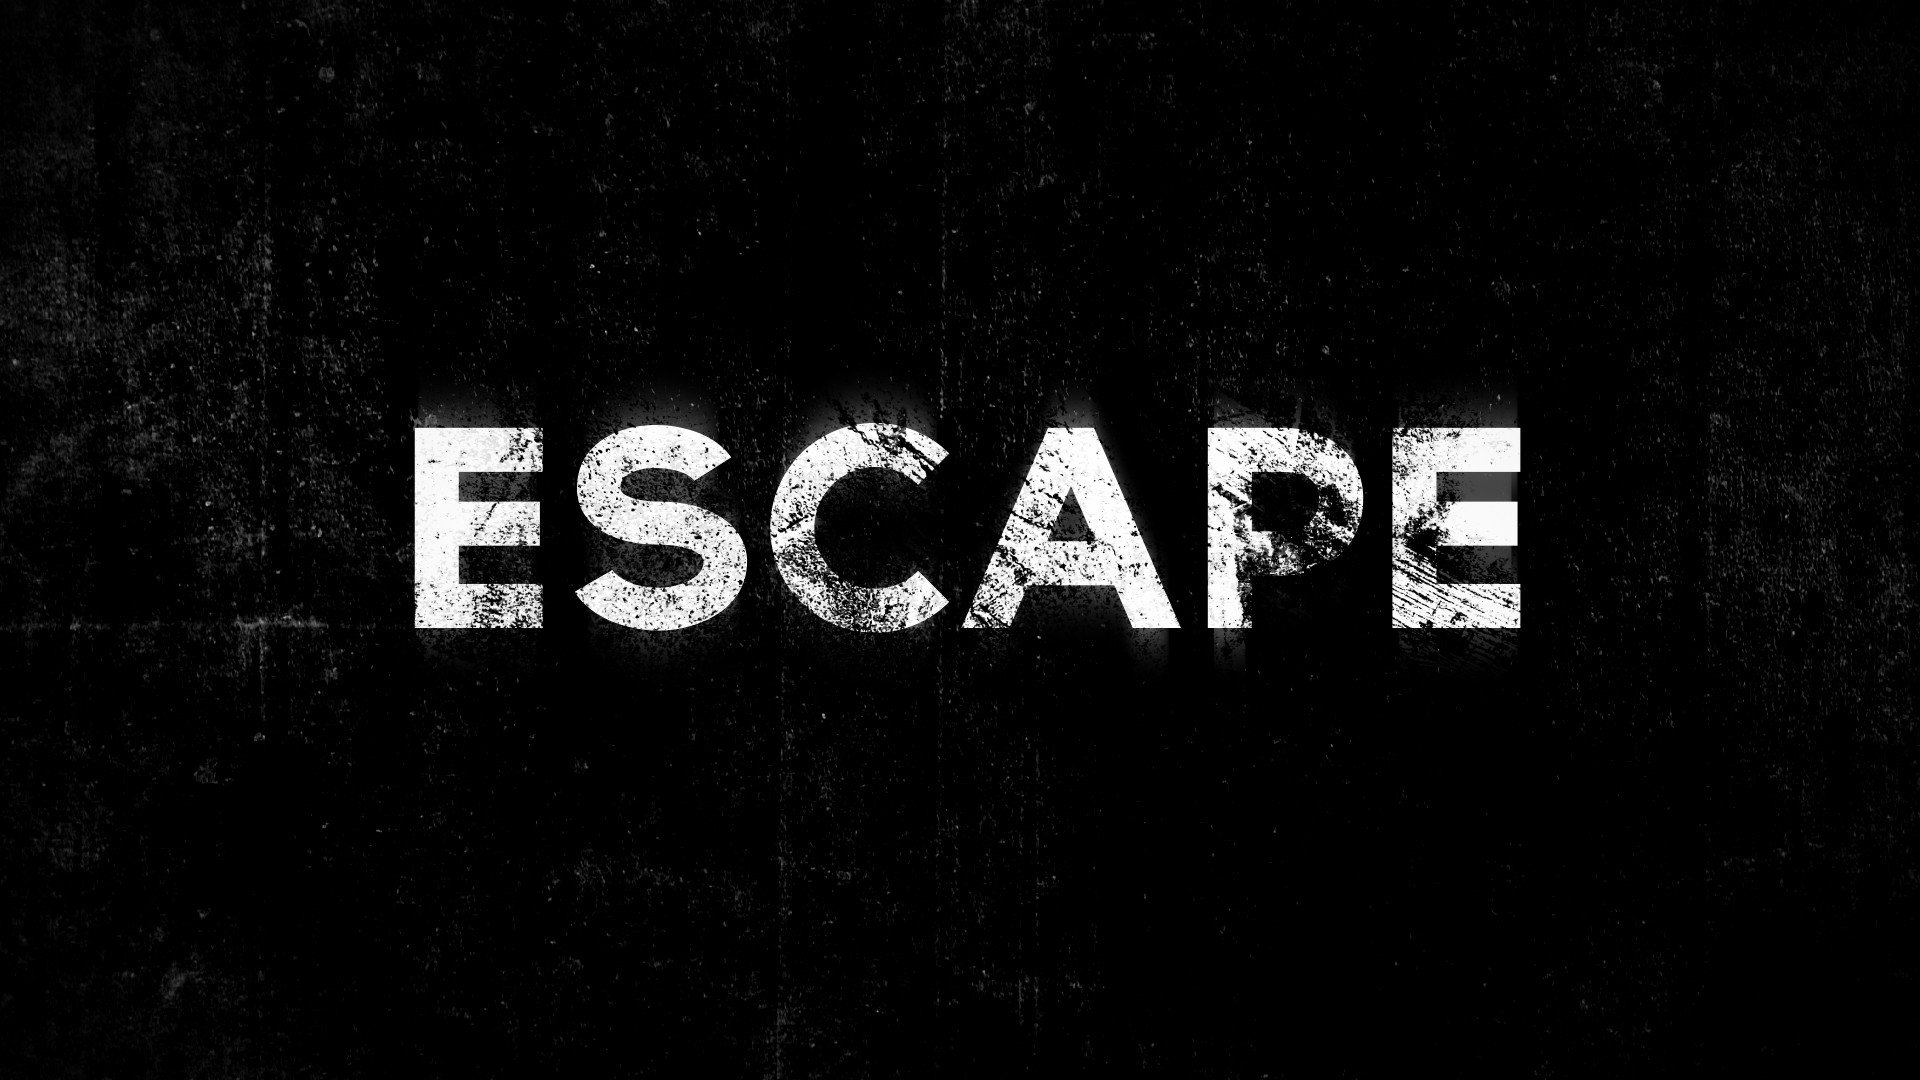 Grunge typography escape black background wallpaper 1920x1080